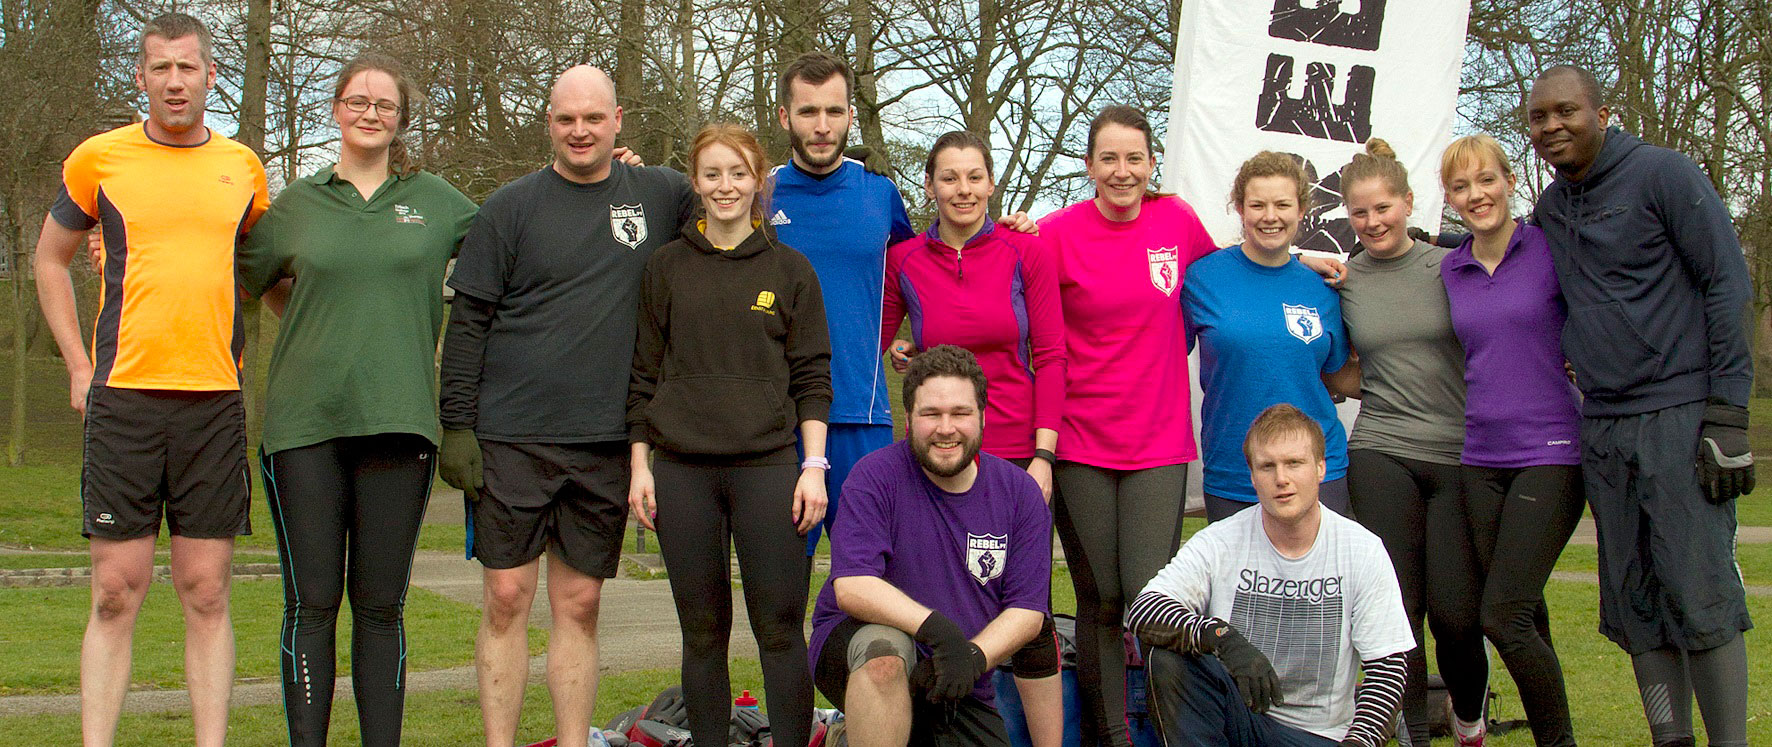 RebelPT is an outdoor, fitness and social club in Aberdeen. We're a community that believes in long term healthy lifestyles. We like to get fit and keep fit through outdoor exercise and group adventures. Our trainers run classes 6 days a week across Aberdeen and we regularly run events free to our members to promote a great social environment for you to enjoy life in the great outdoors.